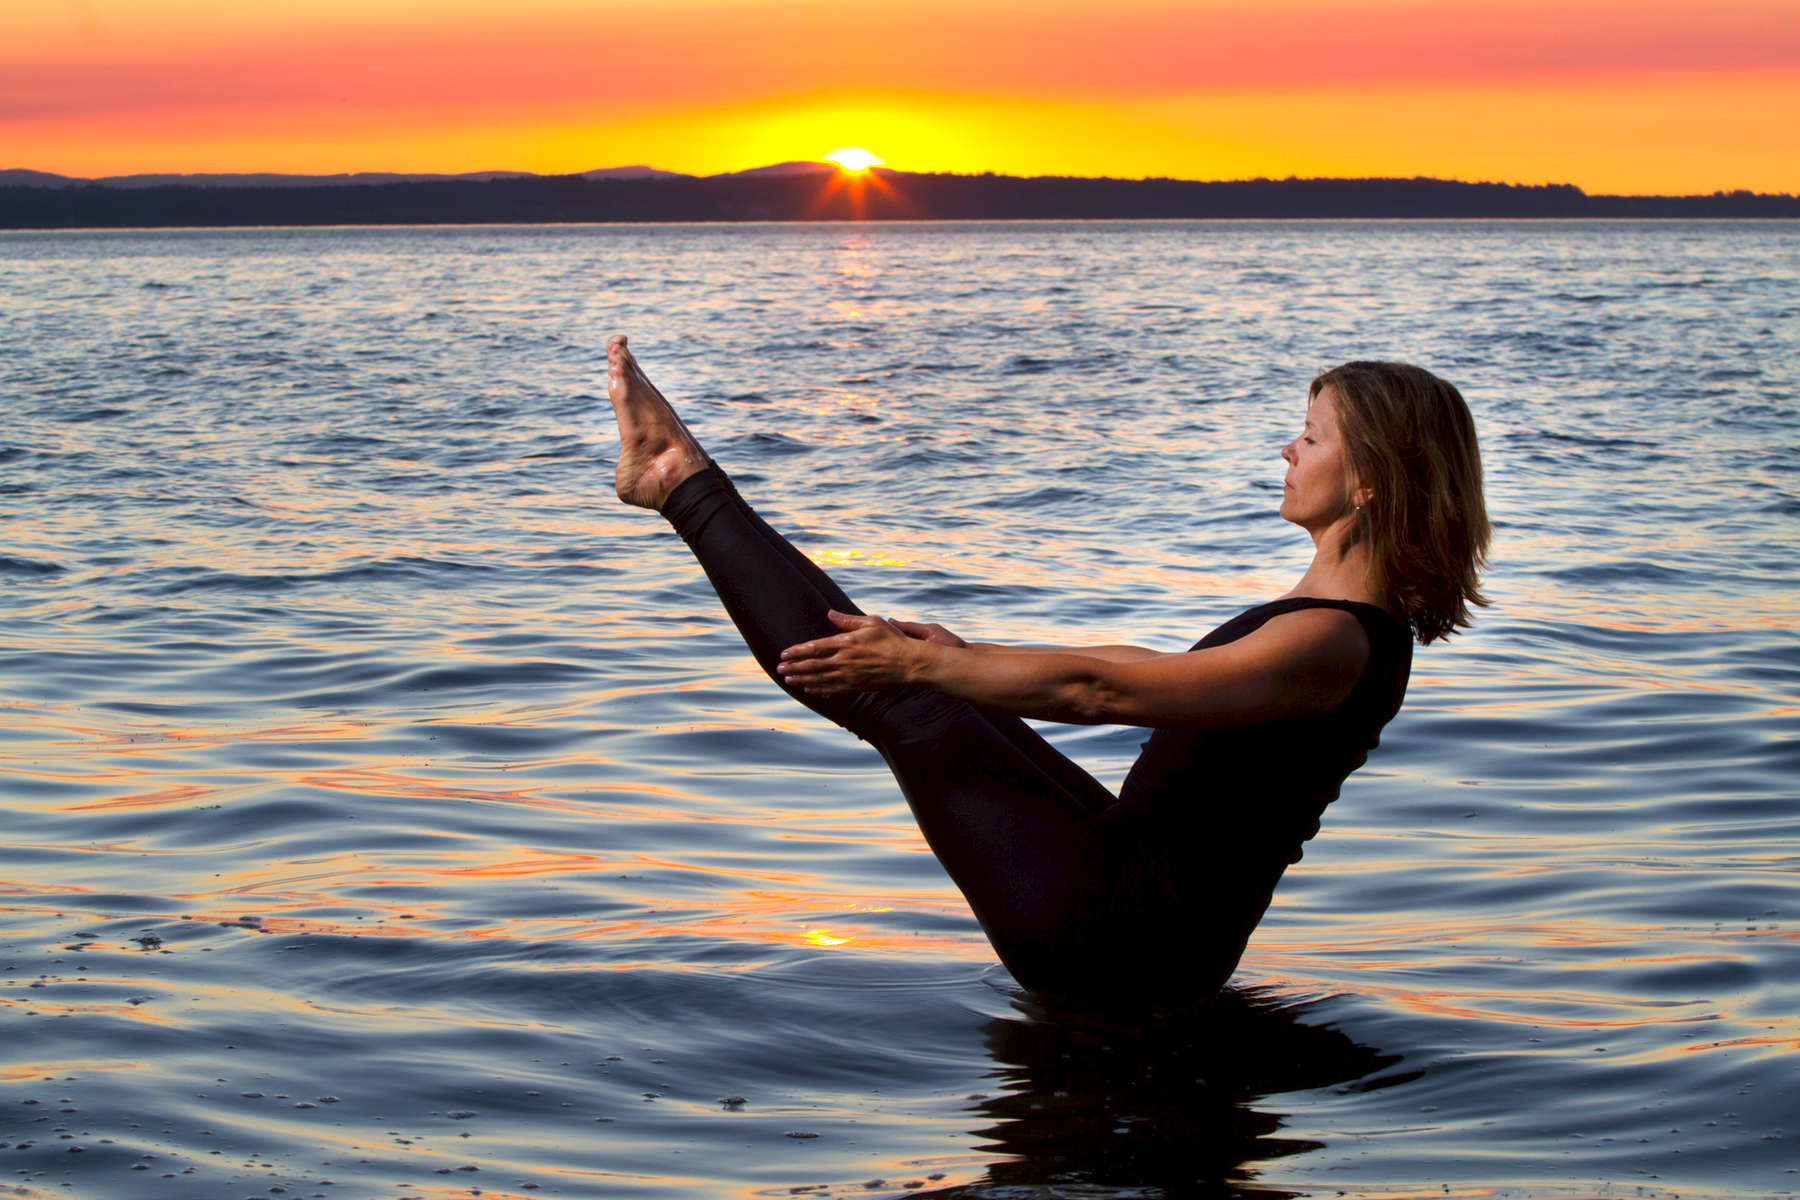 Angeline Johnston, yoga instructor and owner of Richmond Beach Yoga, poses at a beach in Edmonds, Wash. on July 31, 2015. (photo © Karen Ducey)